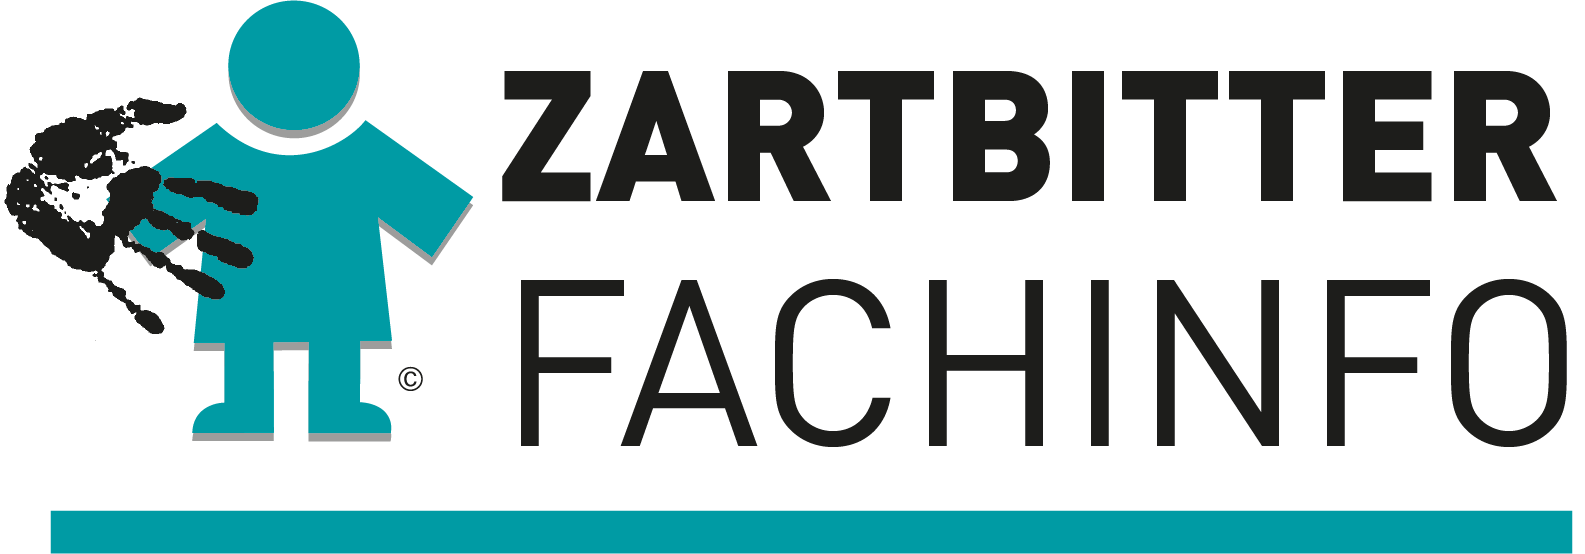 Zartbitter Fachinformationen